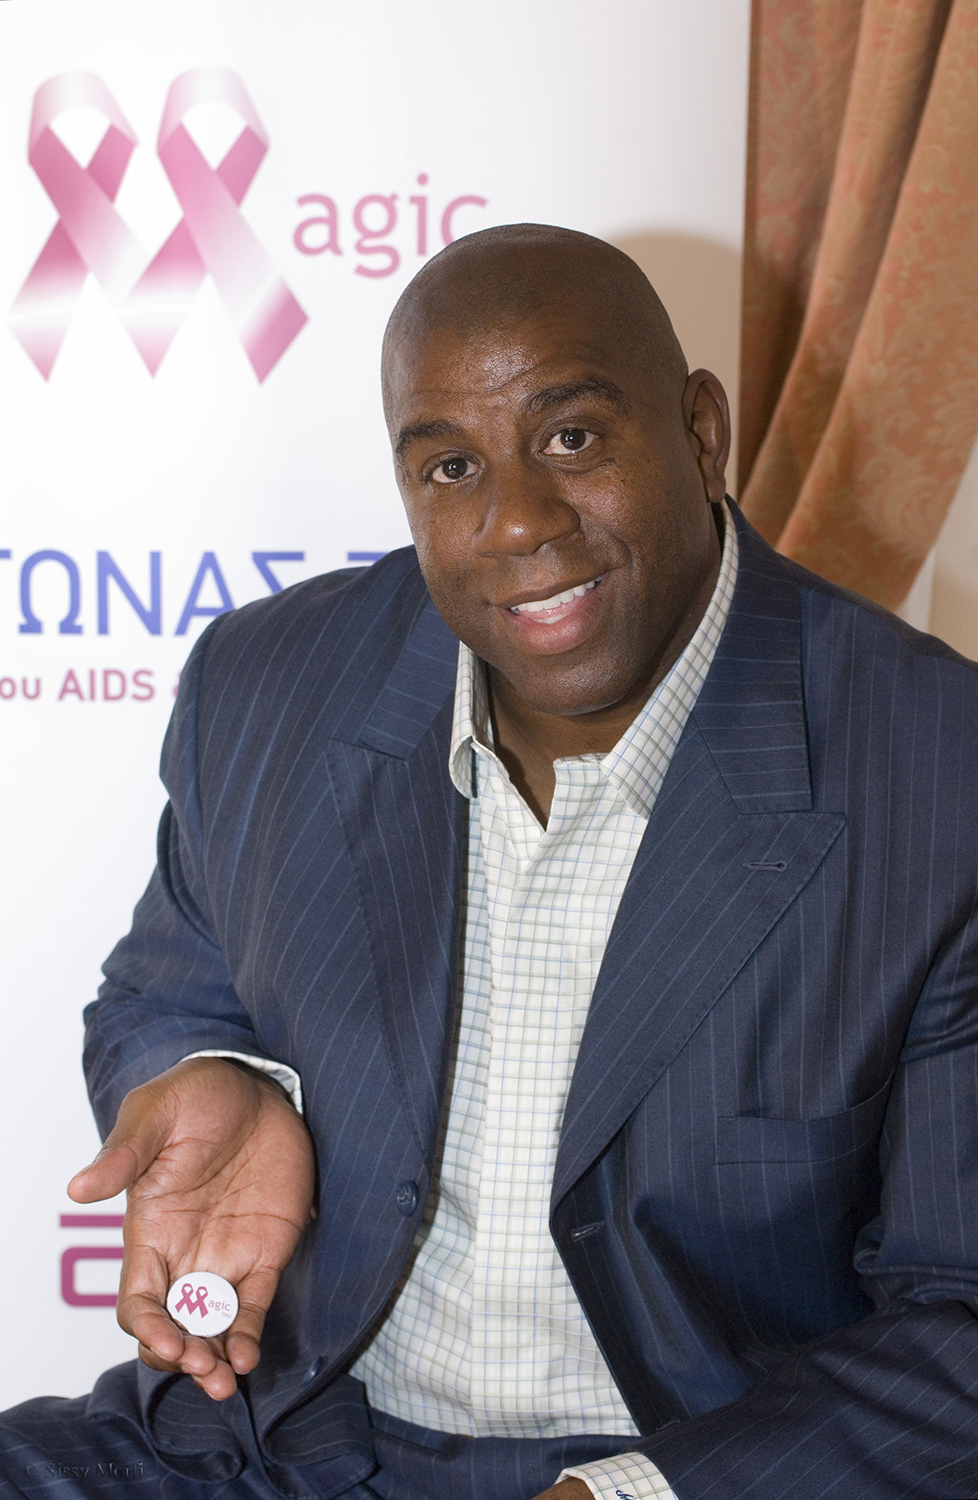 Magic Johnson / basketball player